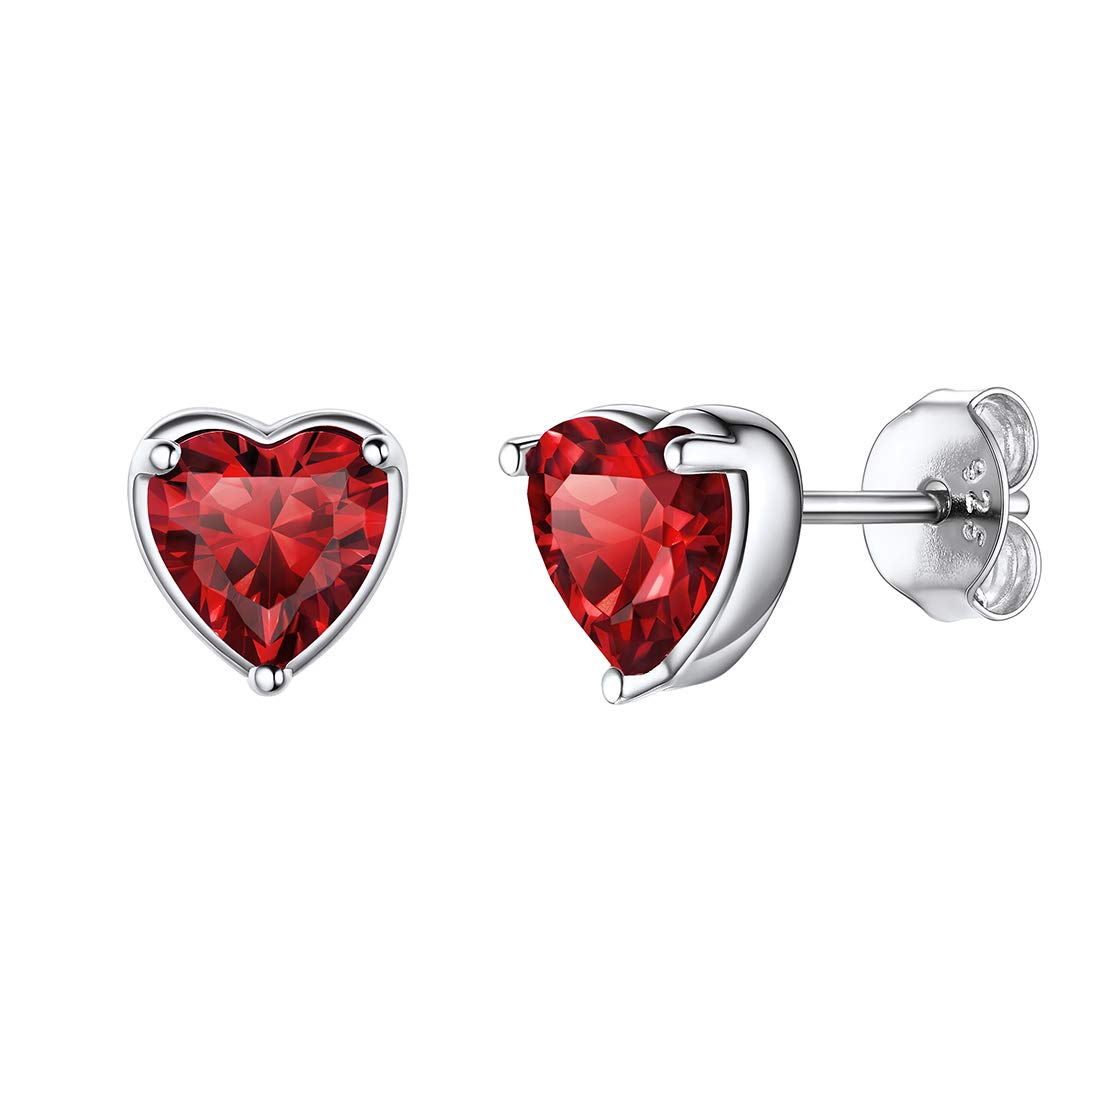 Ruby Earrings Heart Charm Girlfriend Gift Gift for Wife July Birthstoner Valentines Day Wear Valentine Jewelry July Birthday Gift